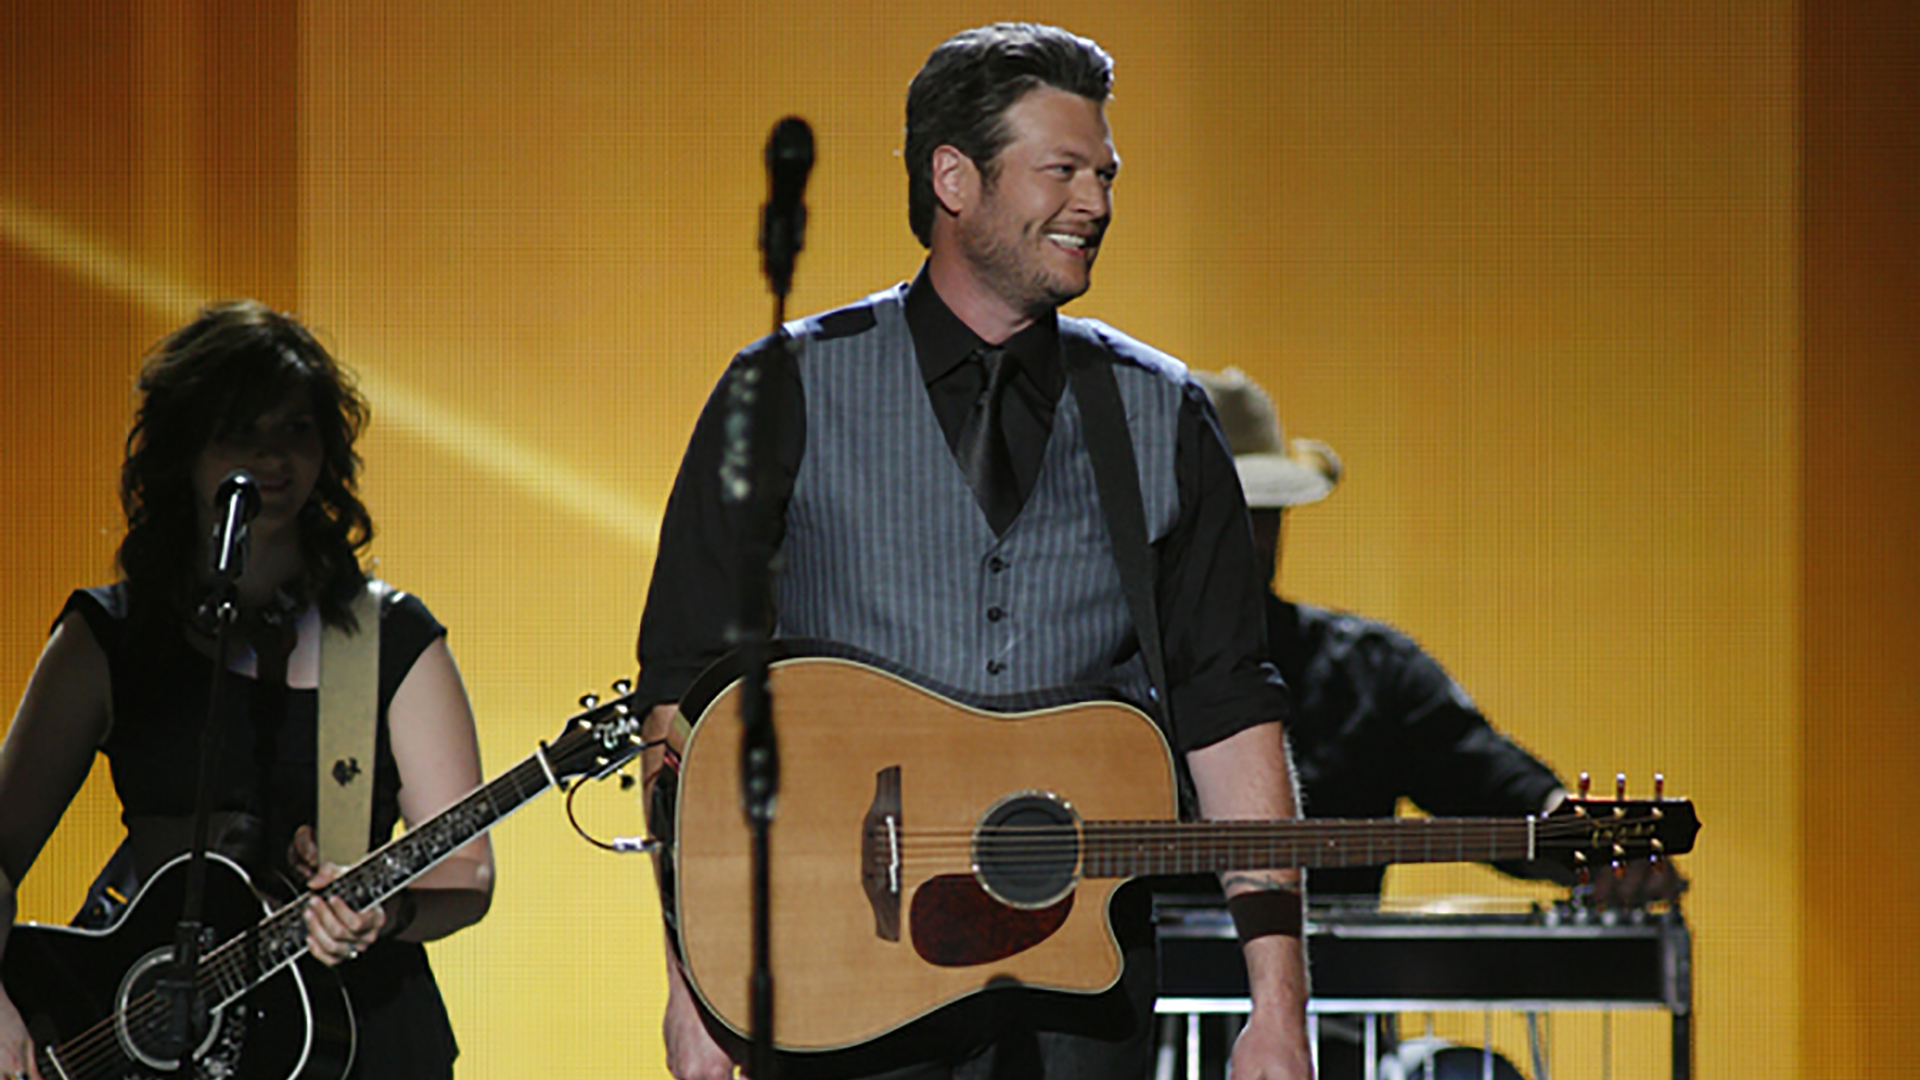 33. Blake Shelton performs